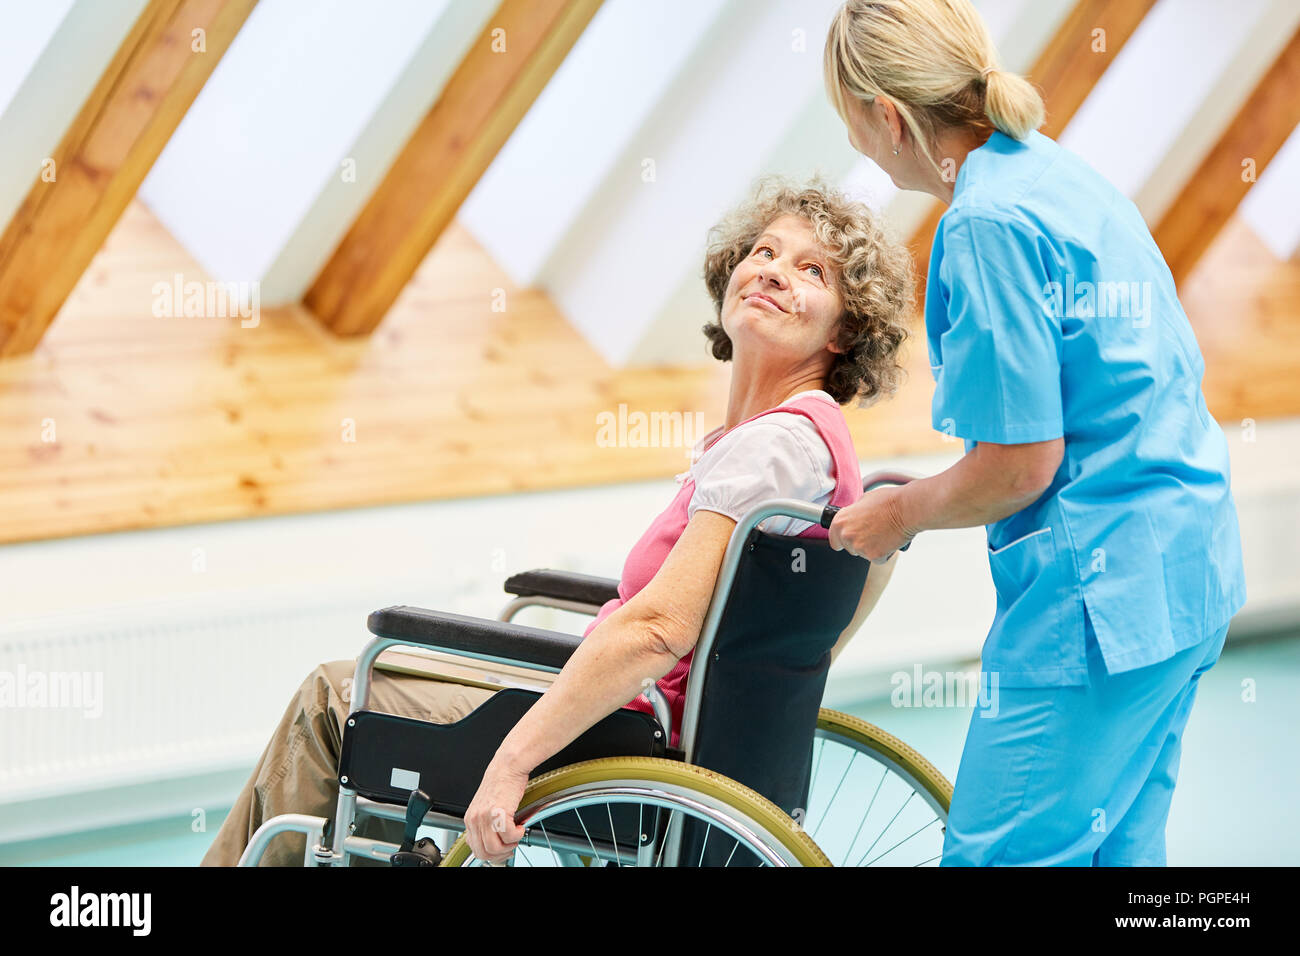 Senior woman as a patient in a wheelchair is being cared for by a caregiver at the rehab clinic - Stock Image